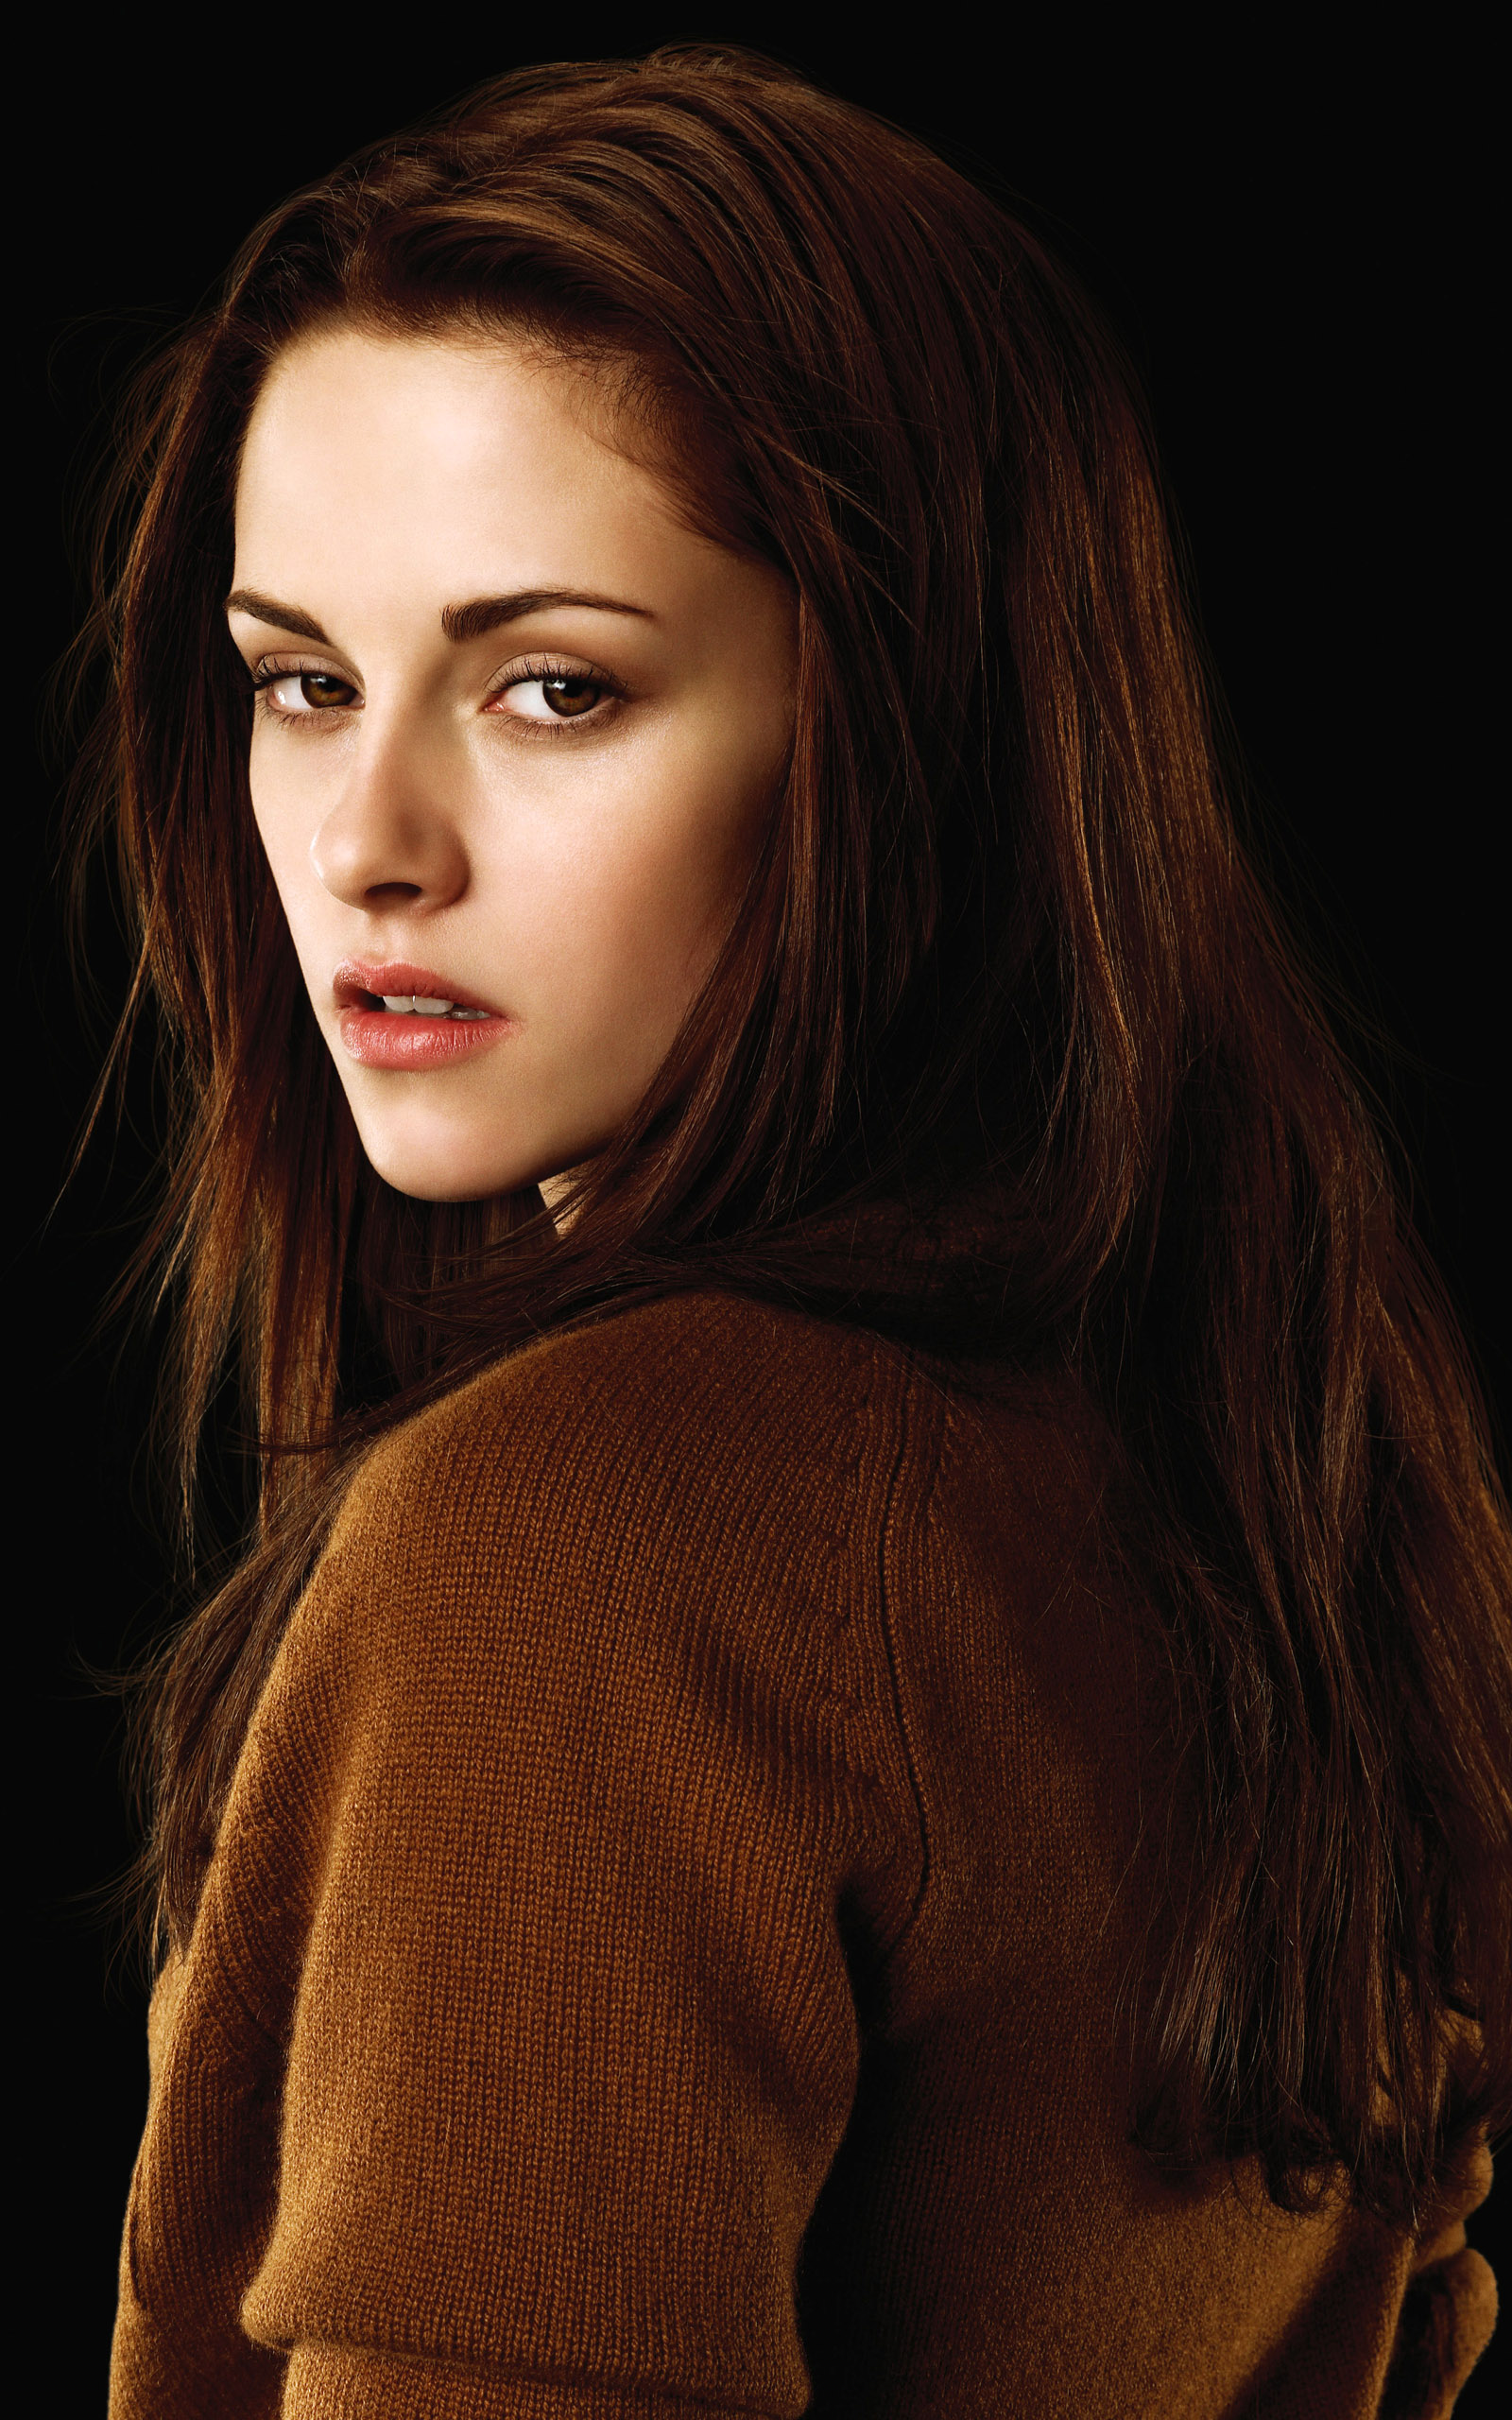 Twilight saga new moon wallpaper free download wallpaper directory free download high quality the twilight saga new moon wallpaper voltagebd Image collections